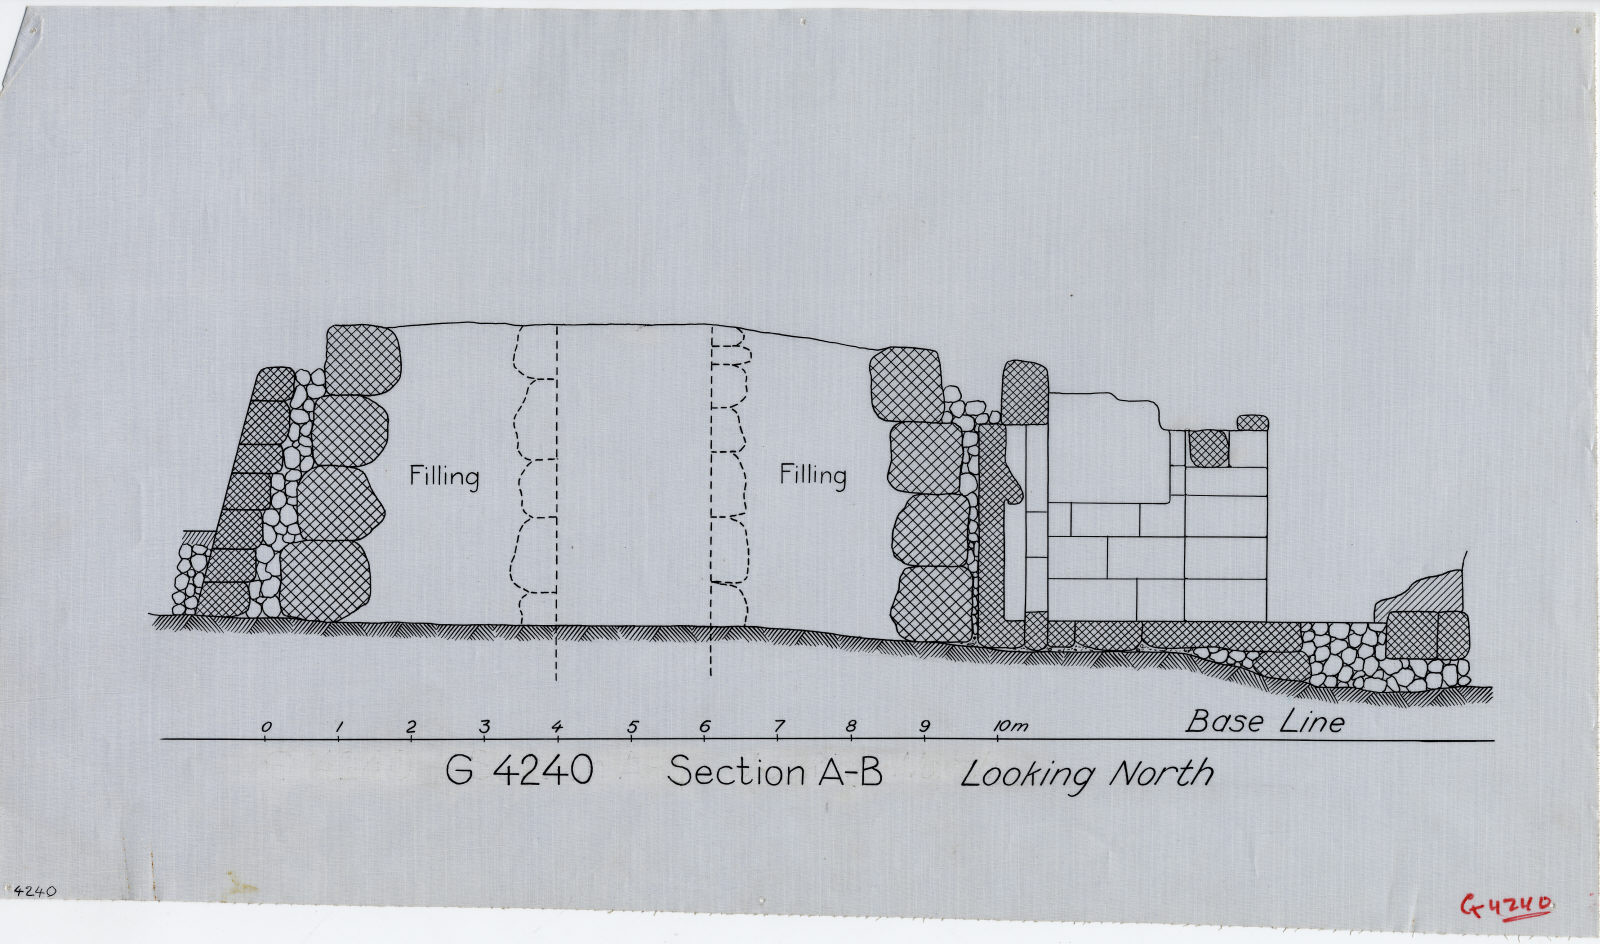 Maps and plans: Section of G 4240